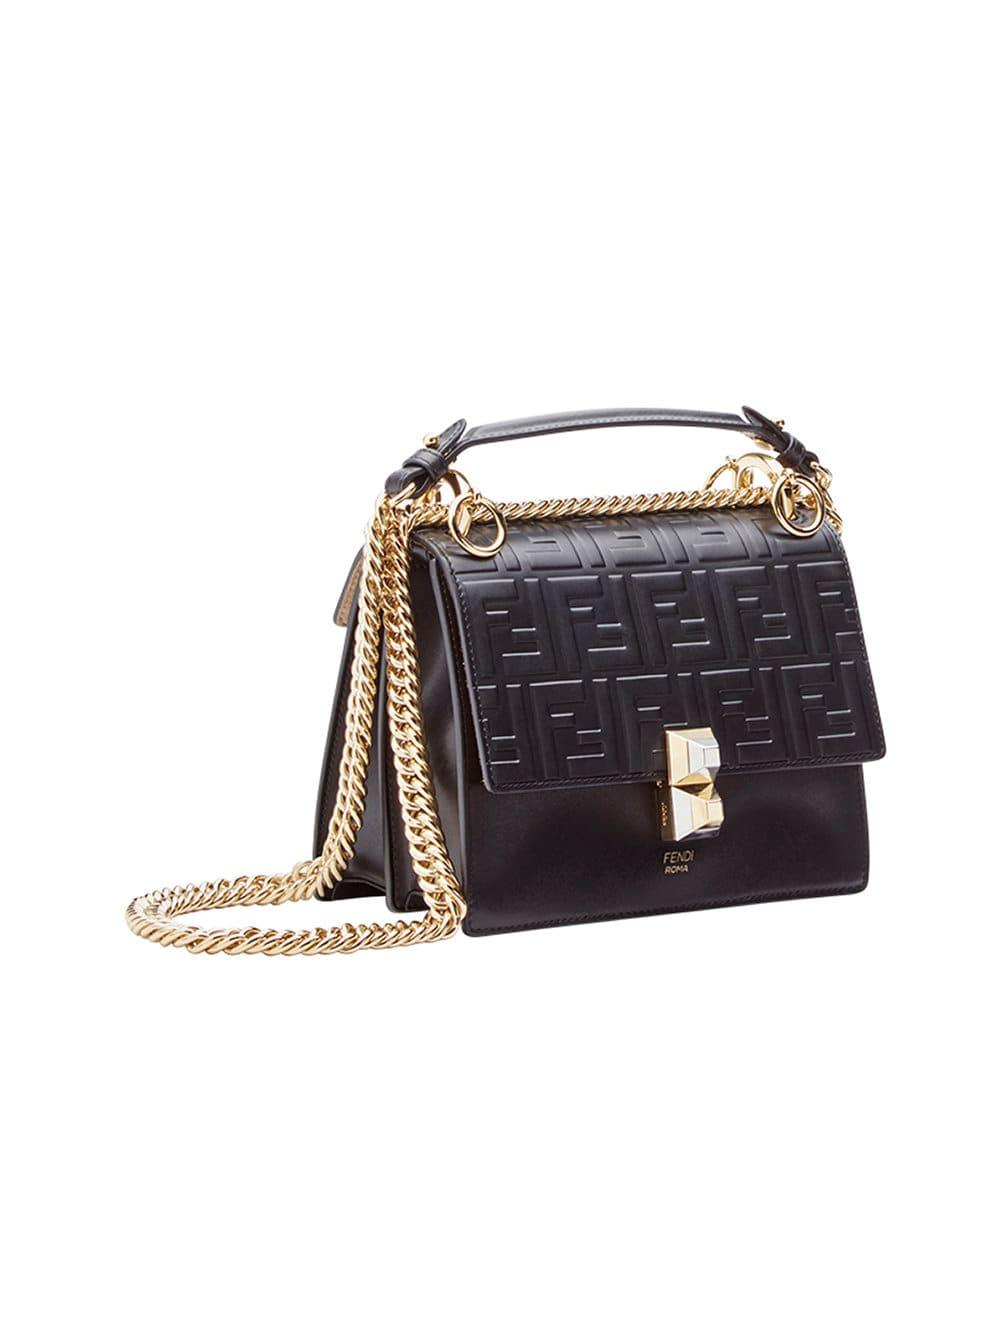 d96ea264126a Lyst - Fendi Kan I Small Leather Shoulder Bag in Black